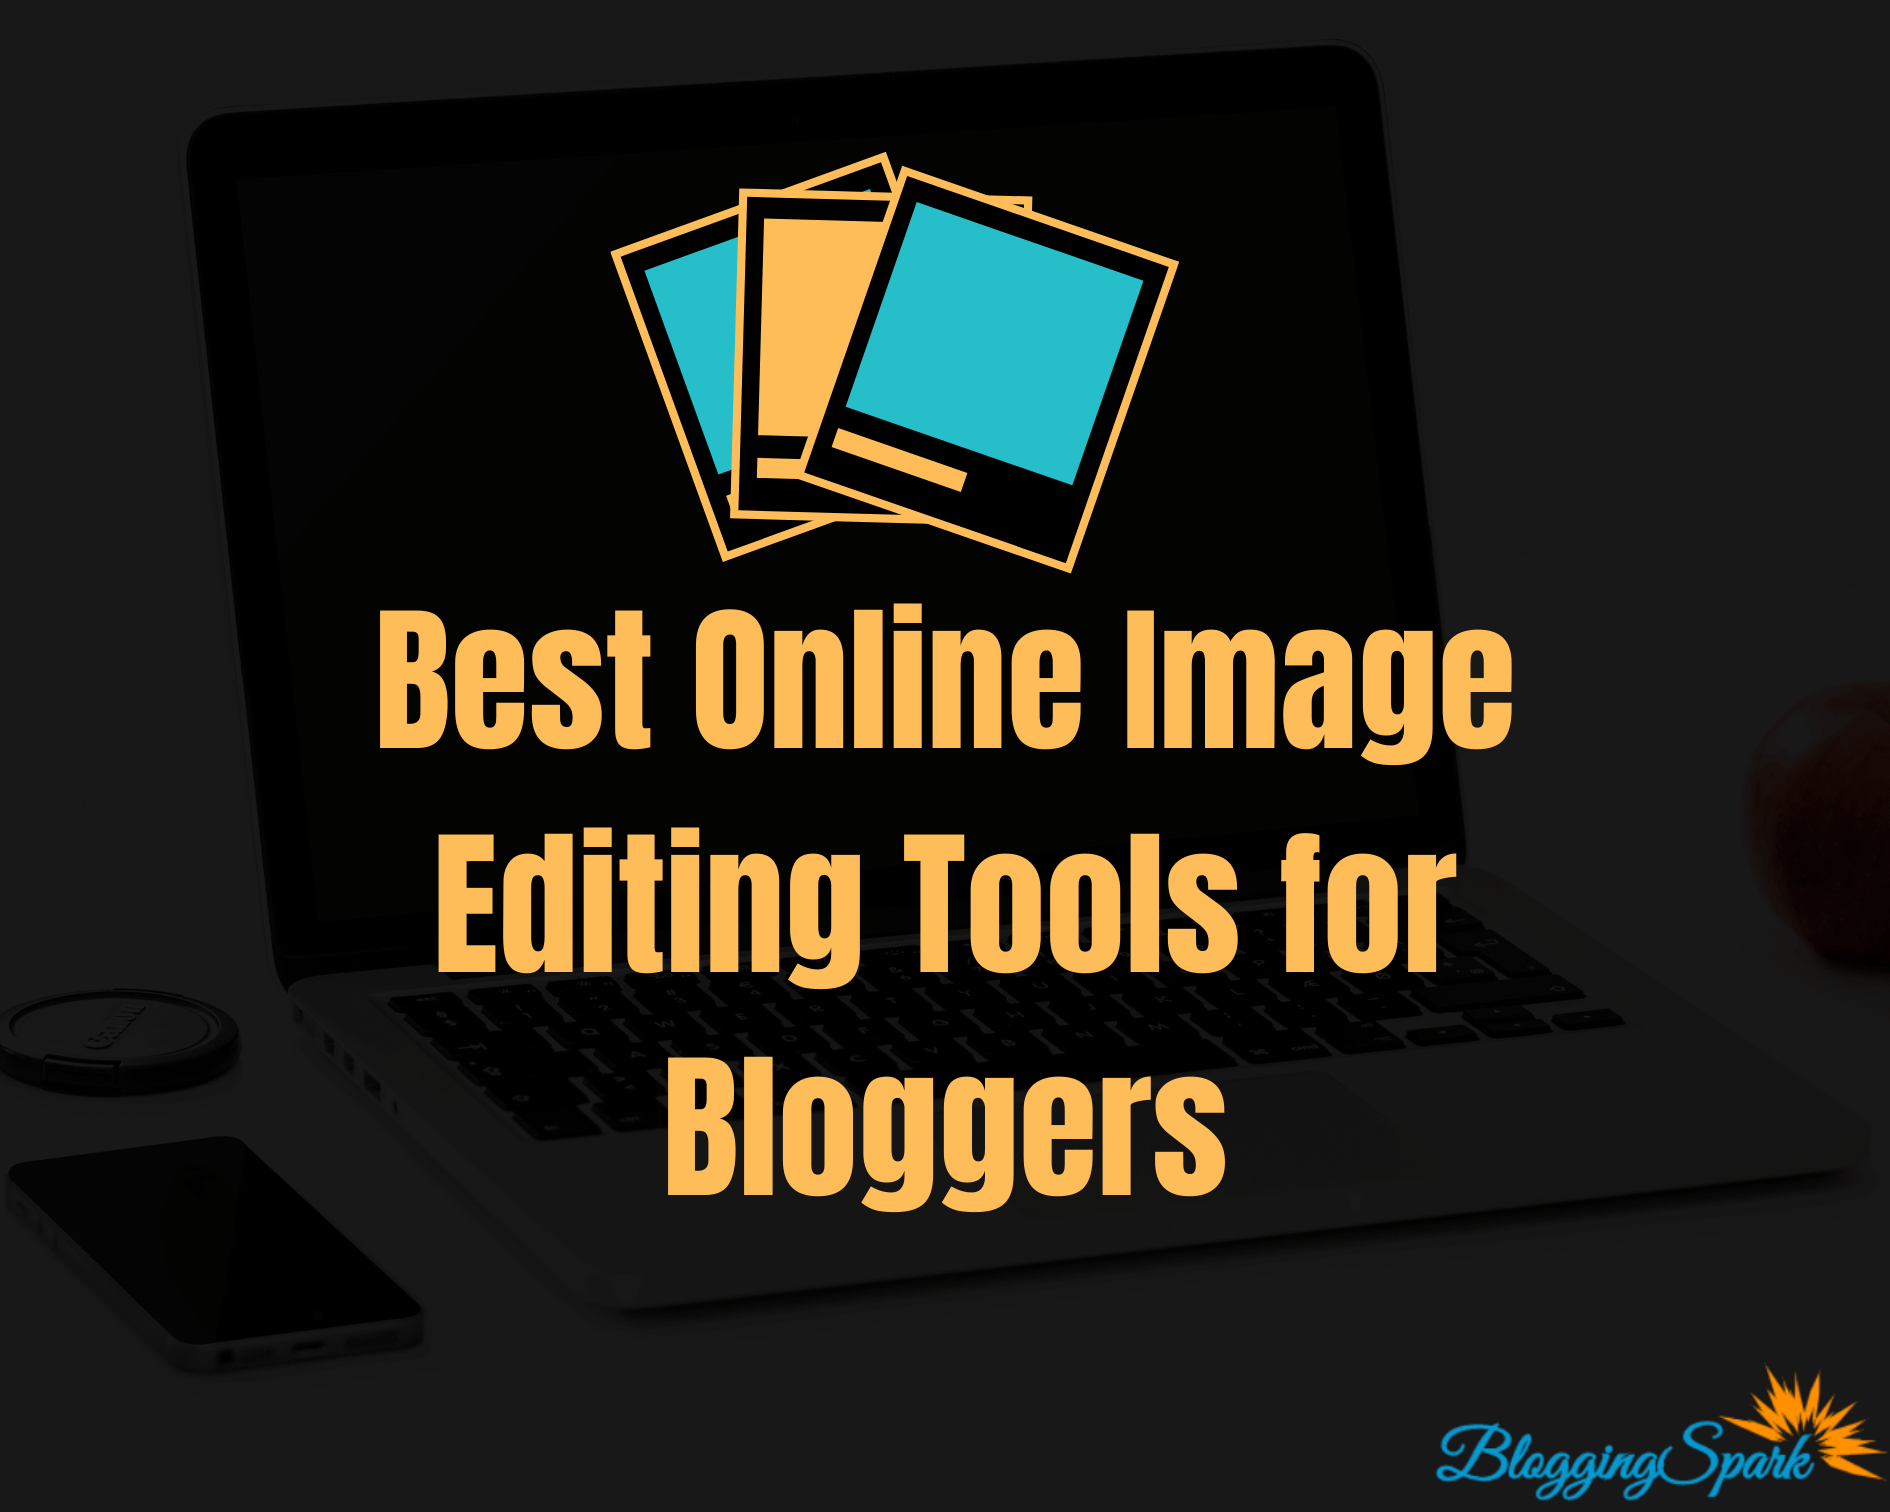 7 Best Online Image Editing Tools for Bloggers in 2020